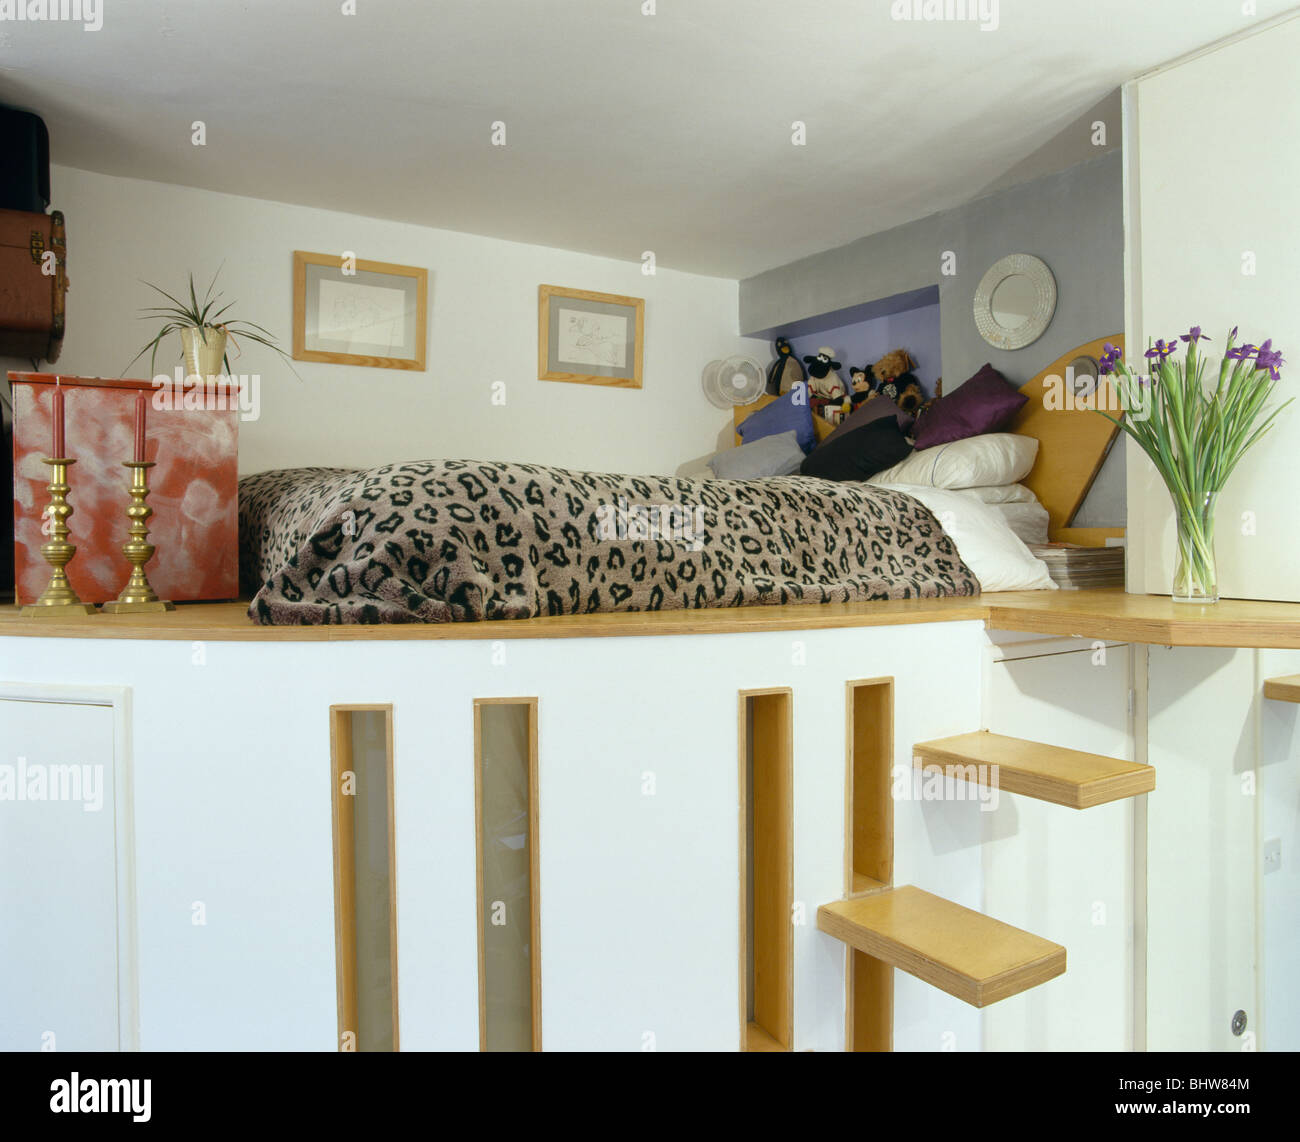 Steps up to platform bed with animal-print bed-cover in small studio apartment bedroom & Steps up to platform bed with animal-print bed-cover in small studio ...